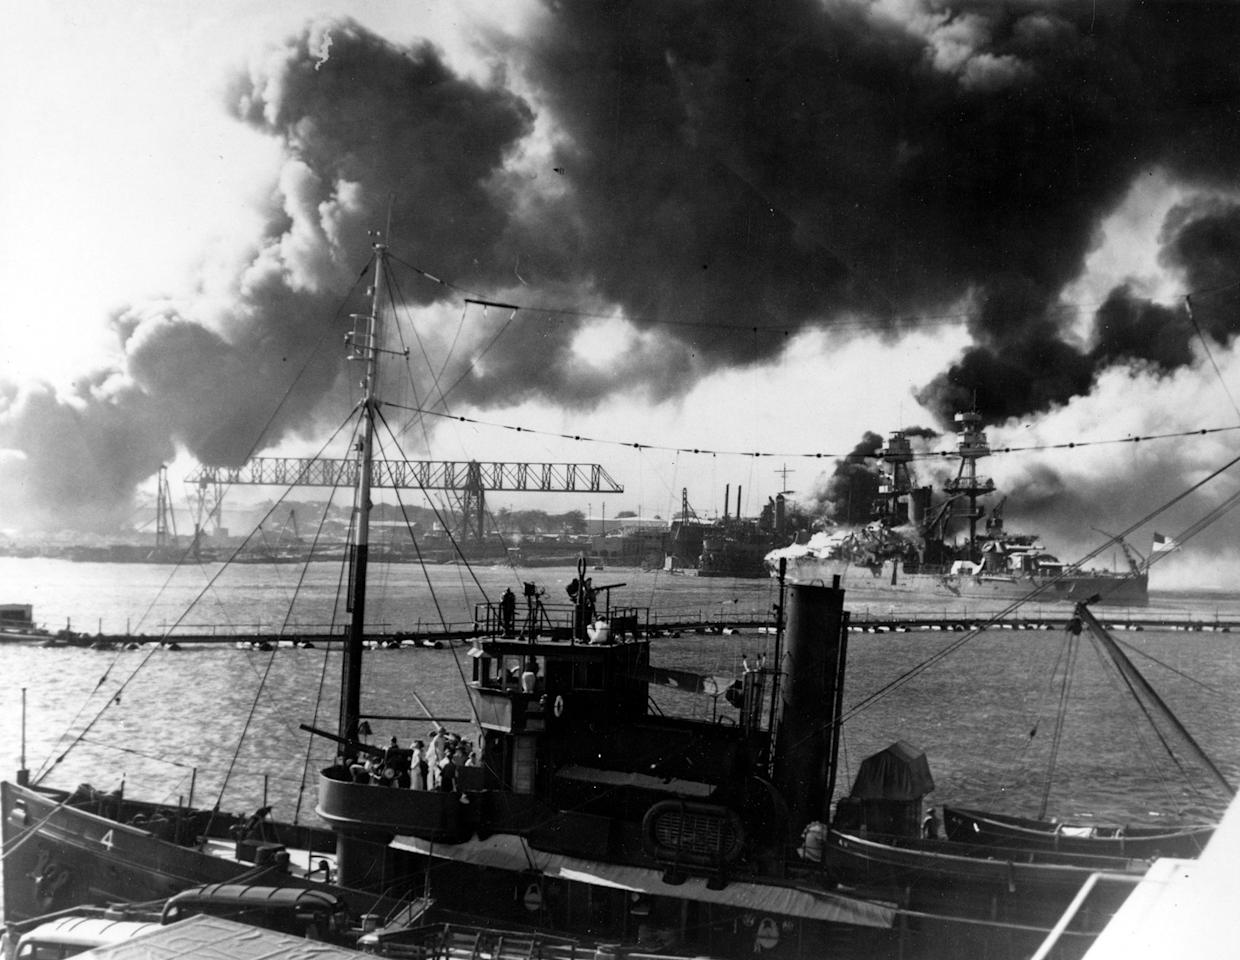 a history of the surprise attack on pearl harbor Browse the latest pearl harbor videos and more on historycom on december 7, 1941, japan launches a surprise attack on american soil at pearl harbor.